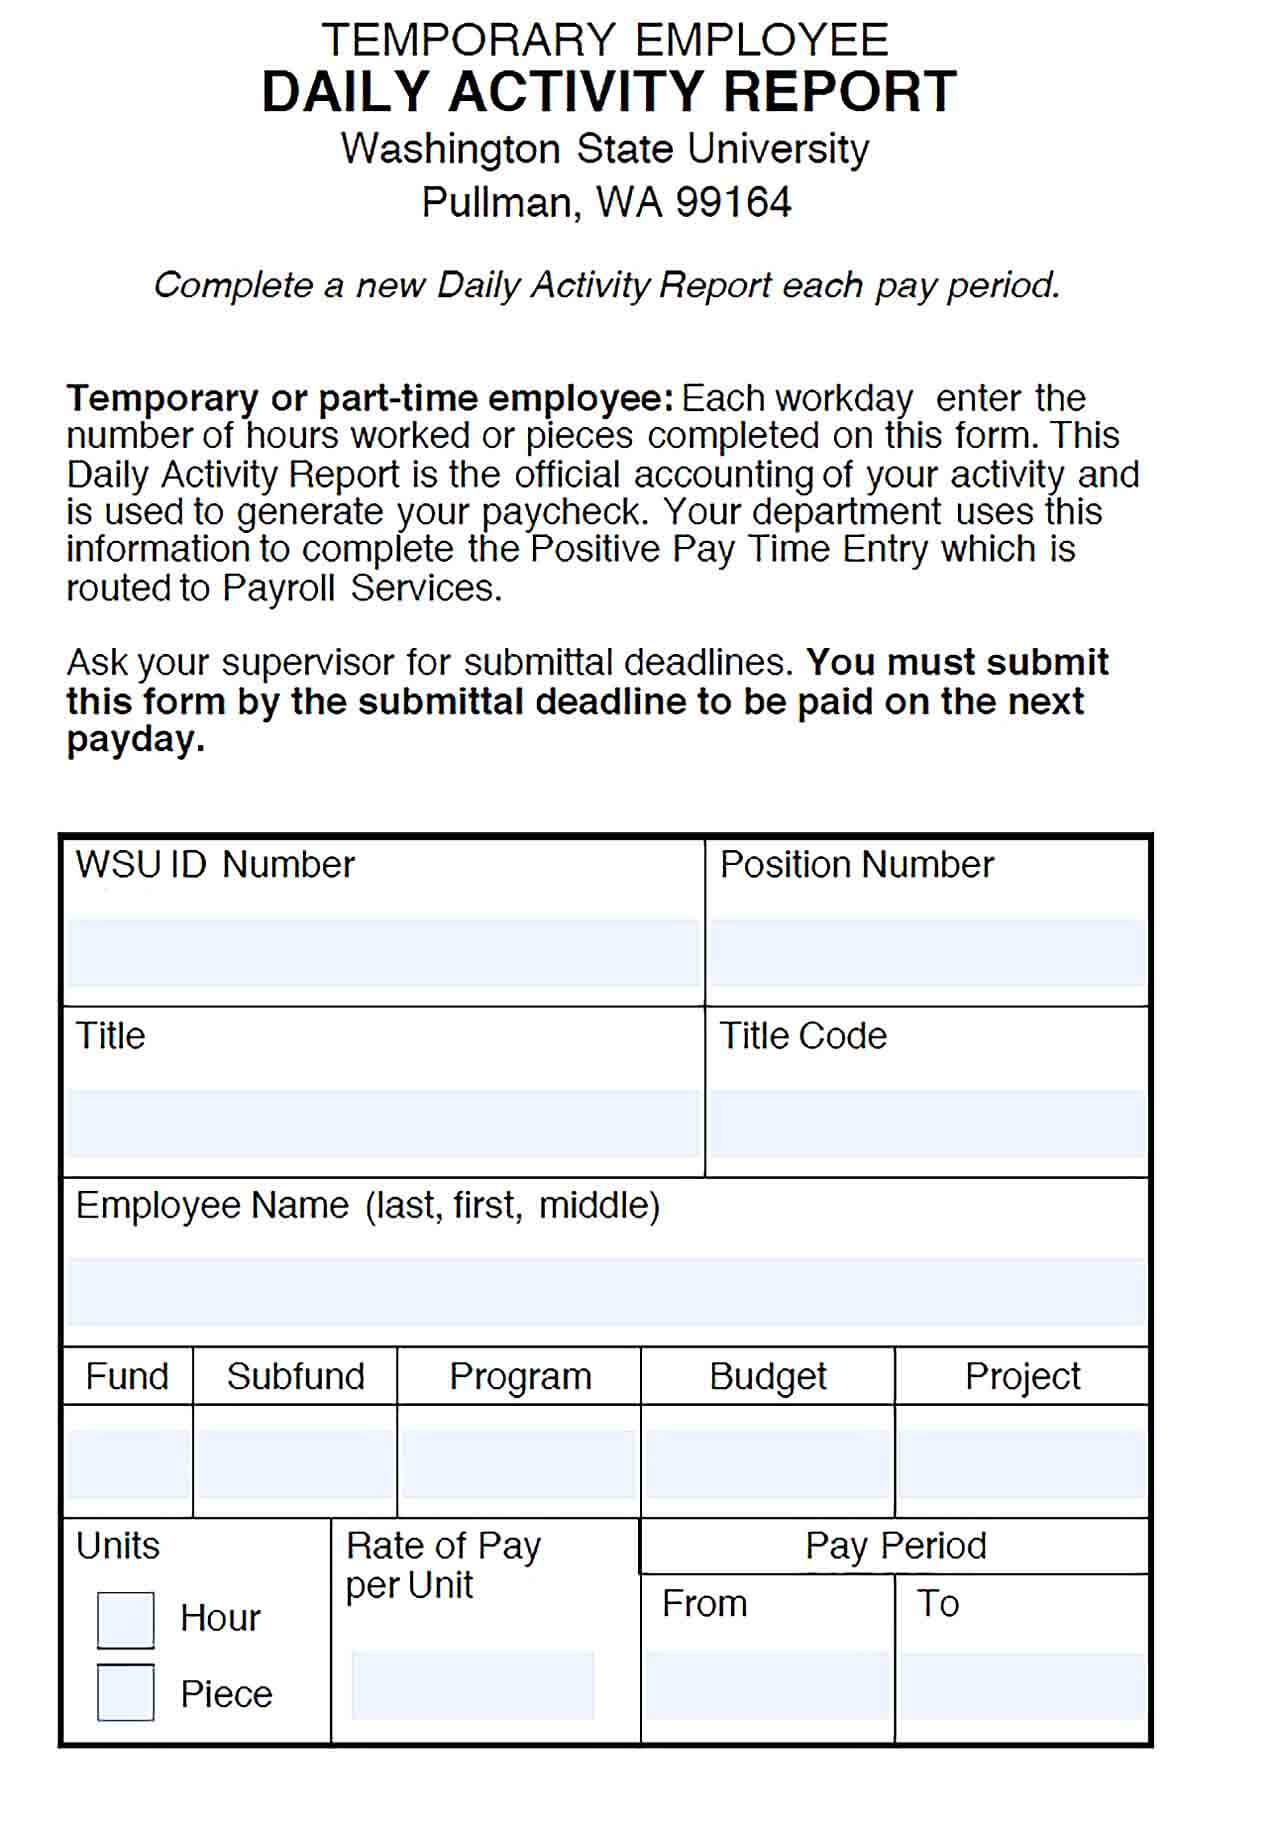 Sample Daily Activity Report for Temporary Employee Template